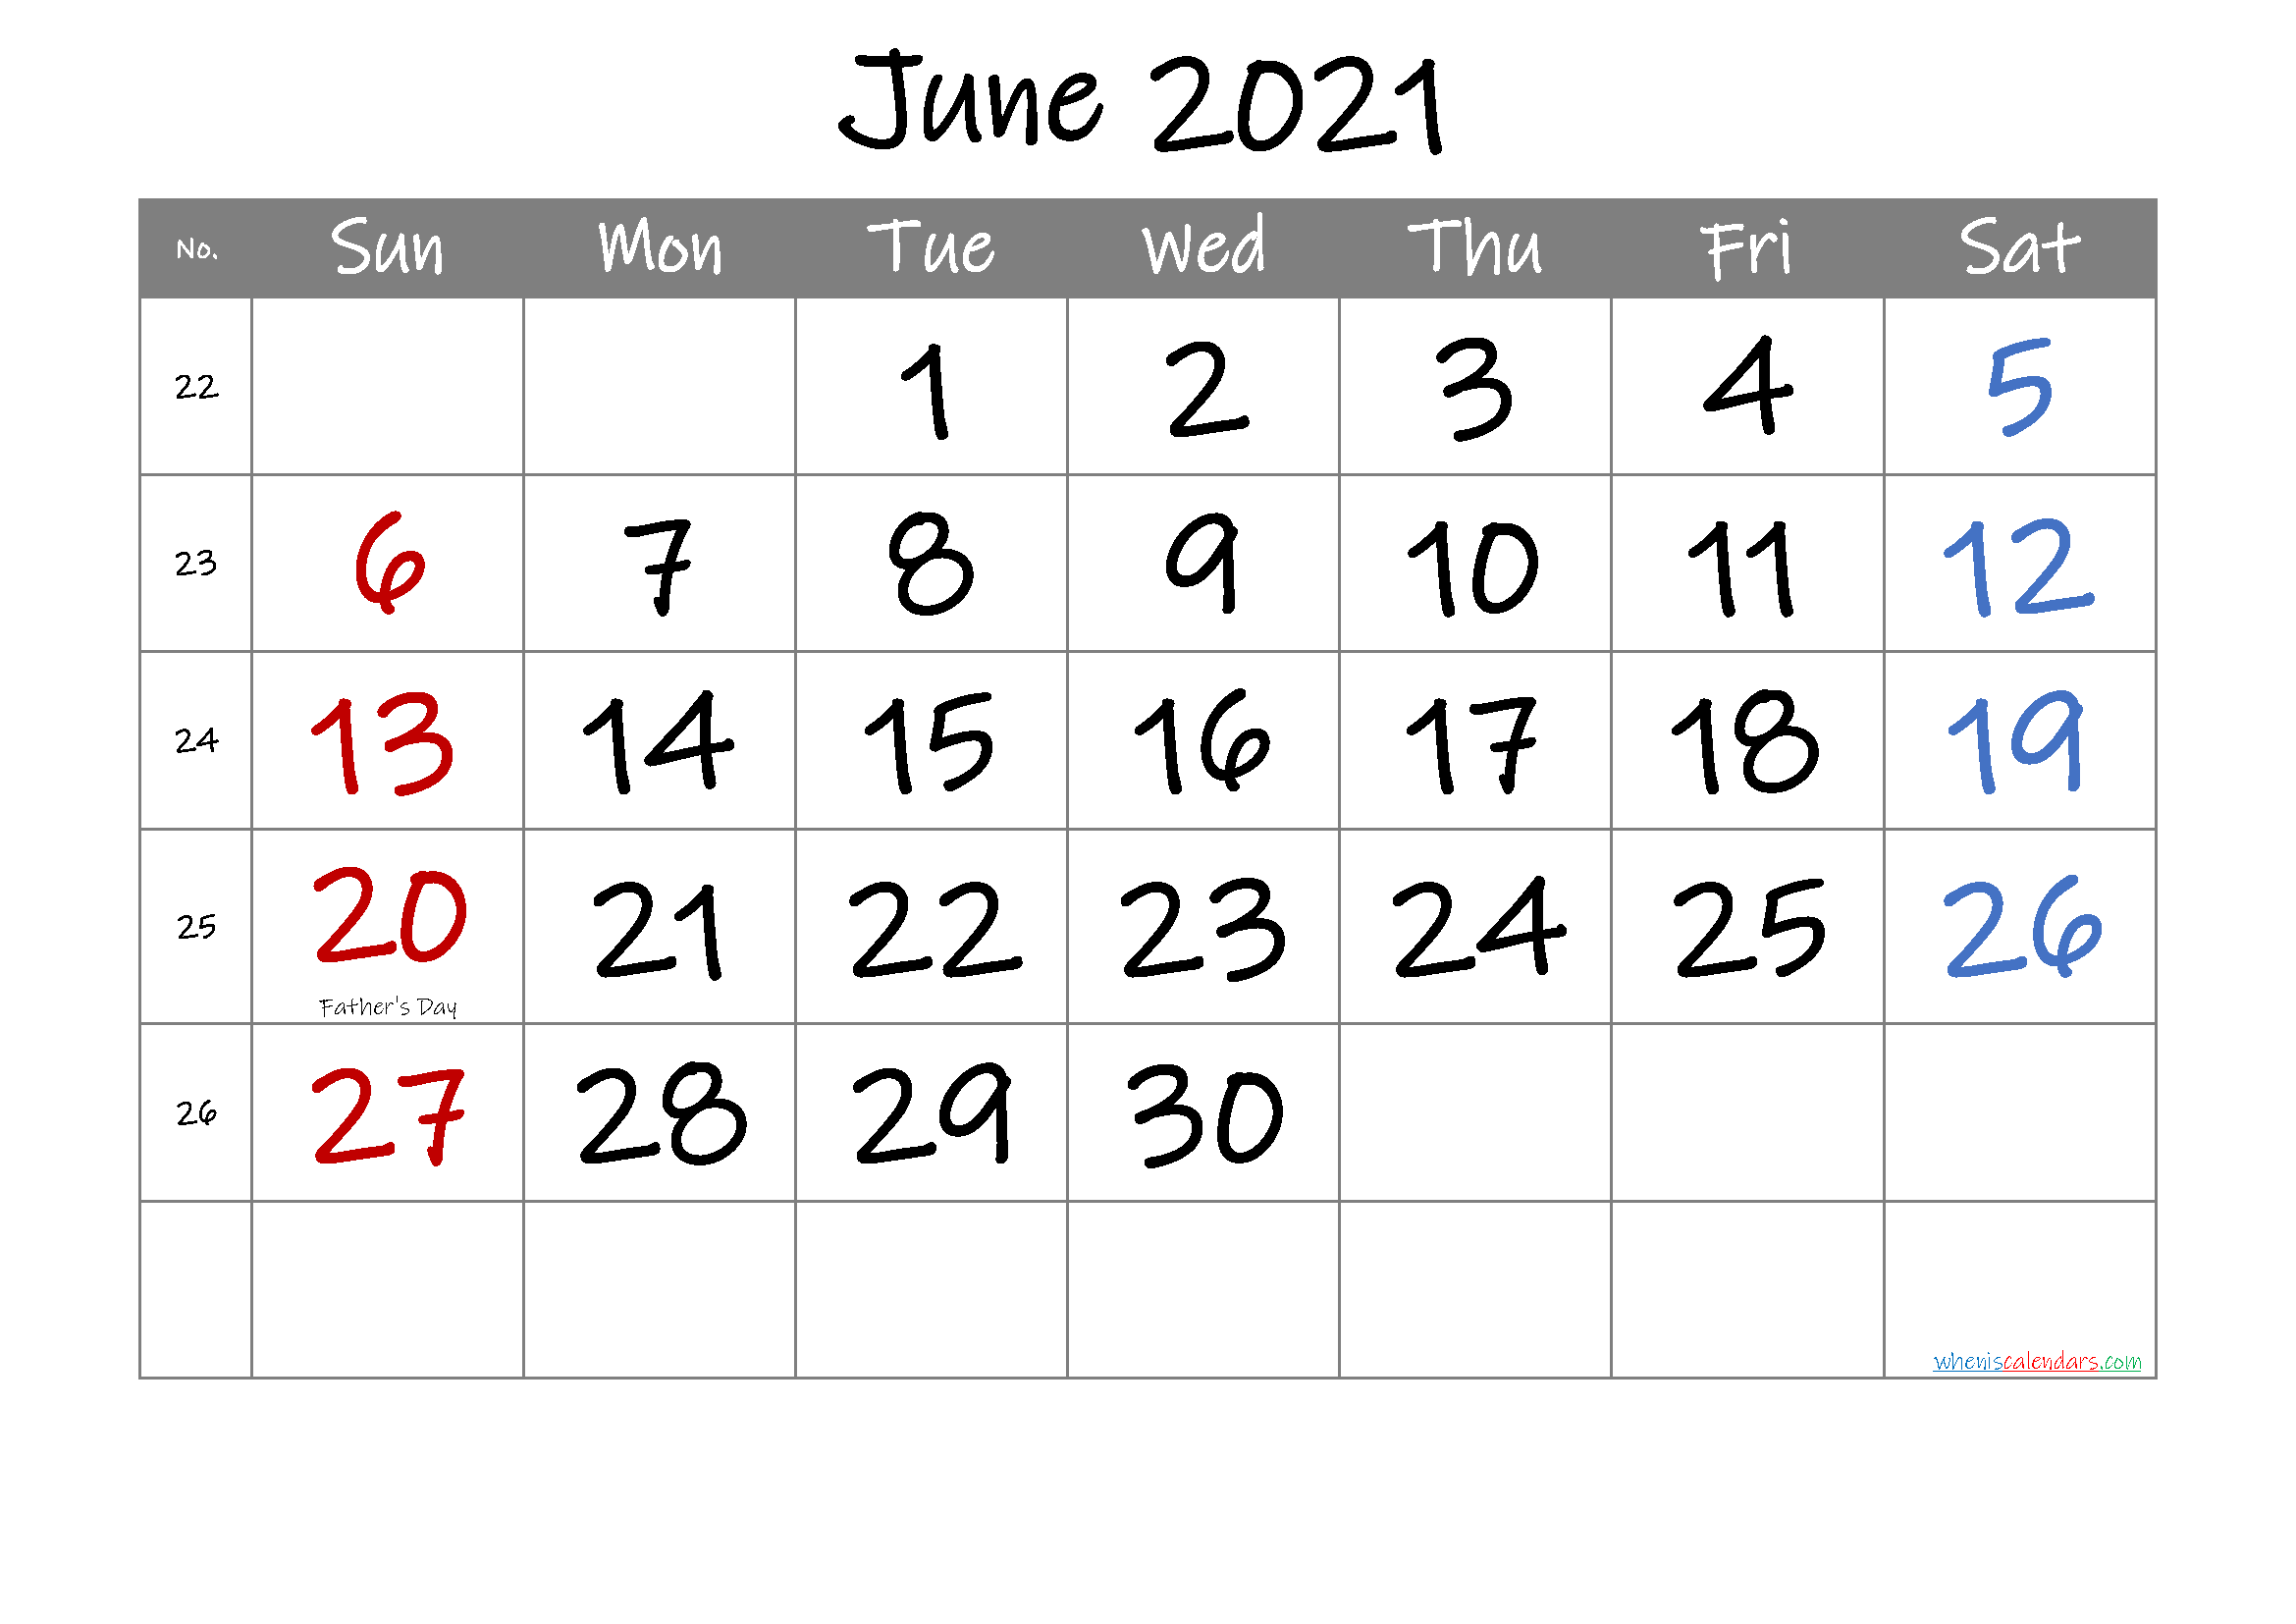 Free June 2021 Printable Calendar with Holidays